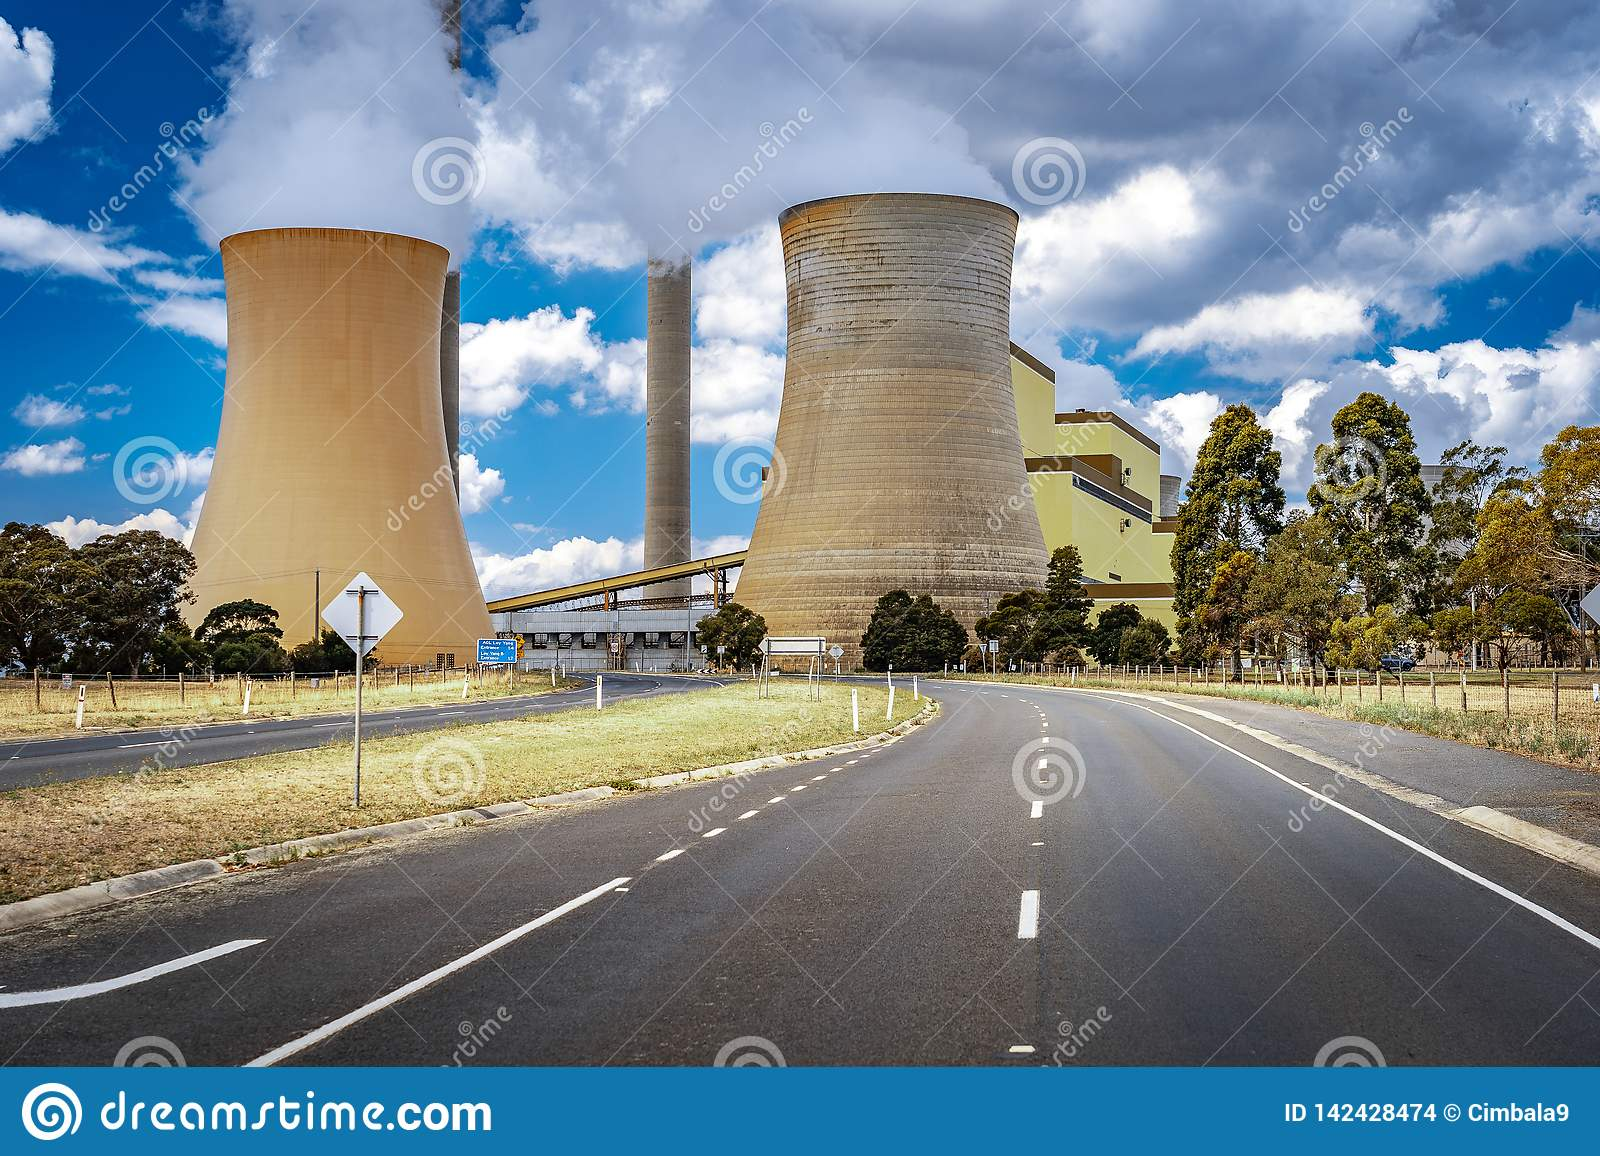 Tralalgon, Victoria, Australia - Loy Yang Coal-fired Power